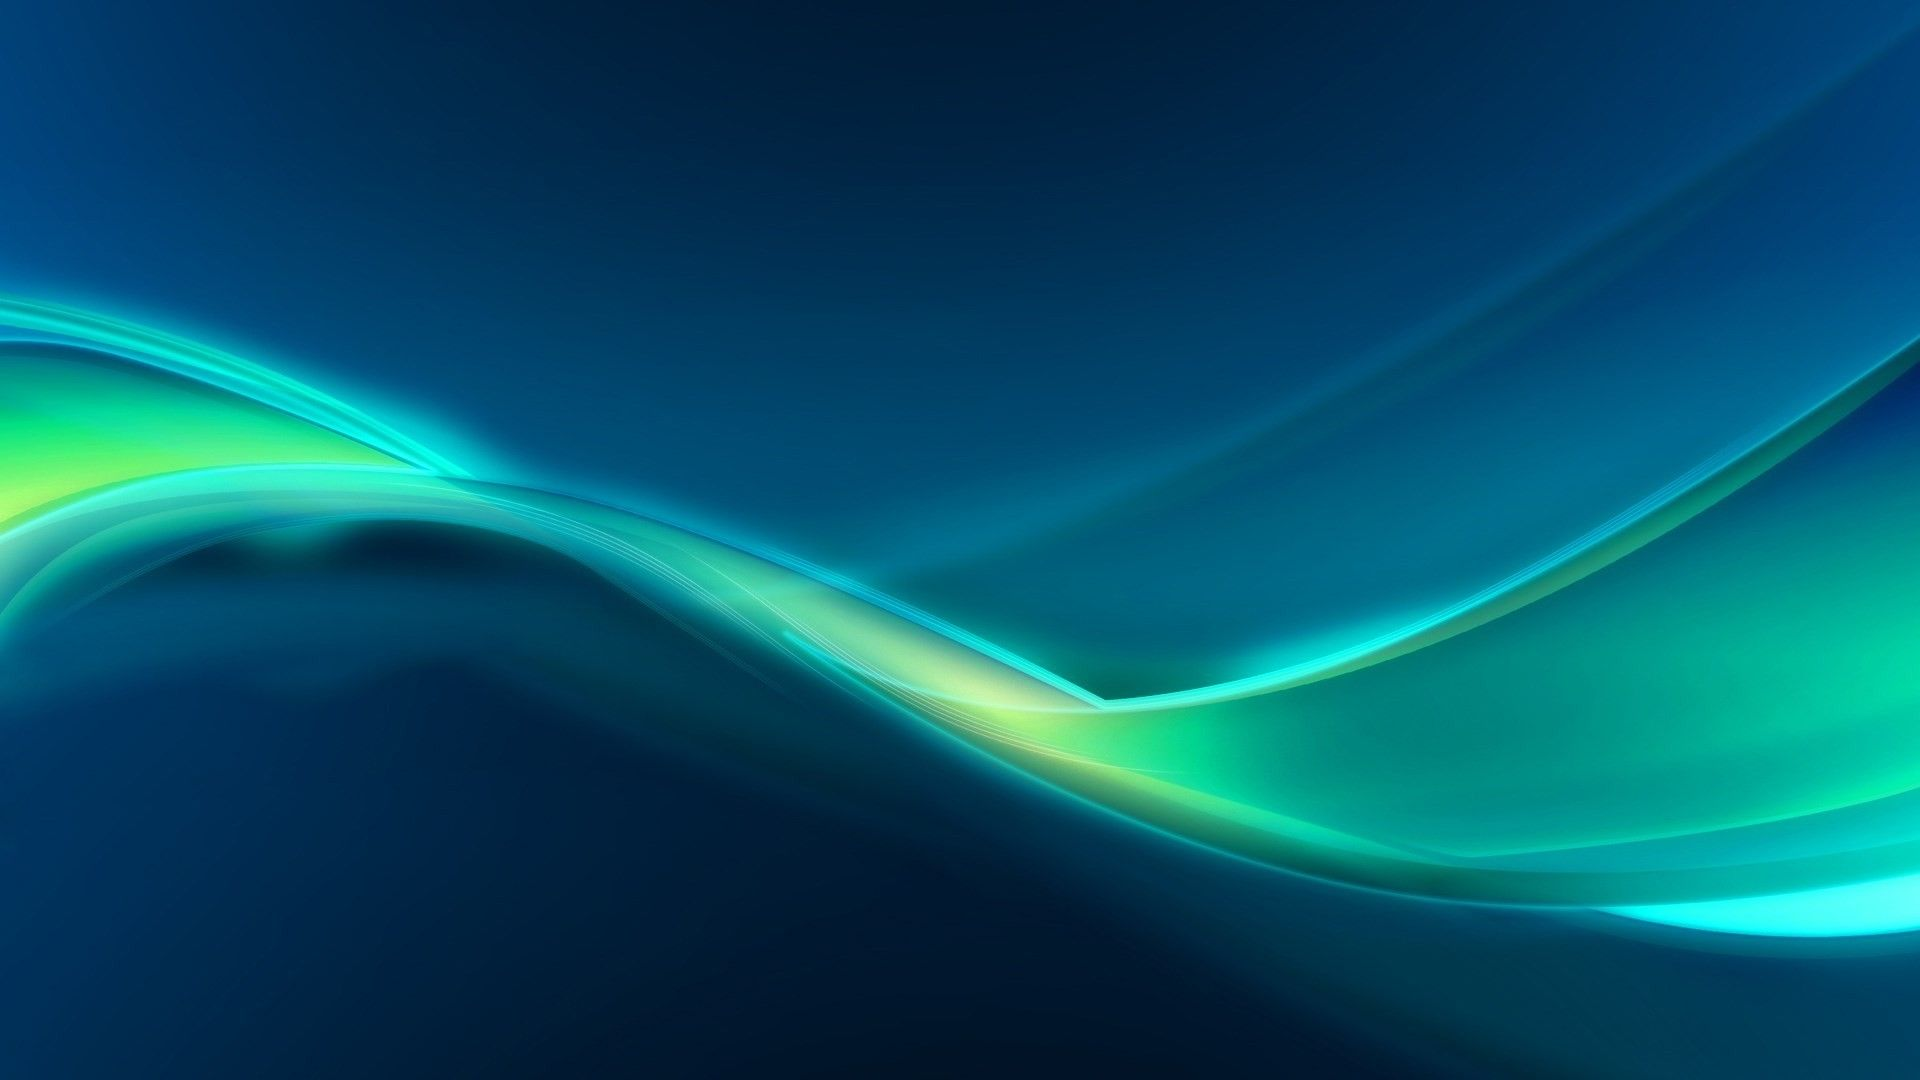 Wallpaper Abstraction, Abstract For Miui